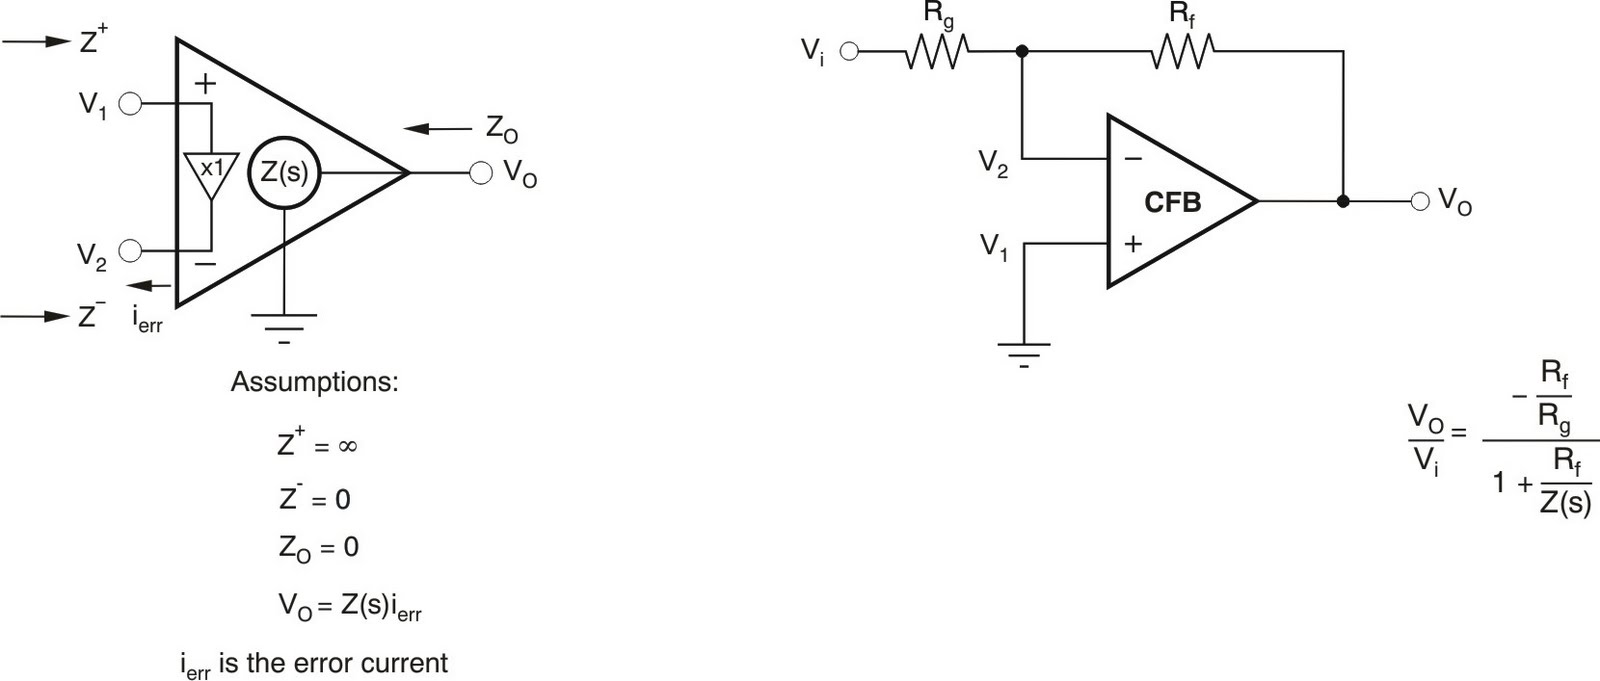 29 Fully Differential Operational Amplifiers Conocimientoscomve Ac Coupling A Noninverting Amplifier Application Basics When Using Wideband Voltage And Current Feedback Op Amps